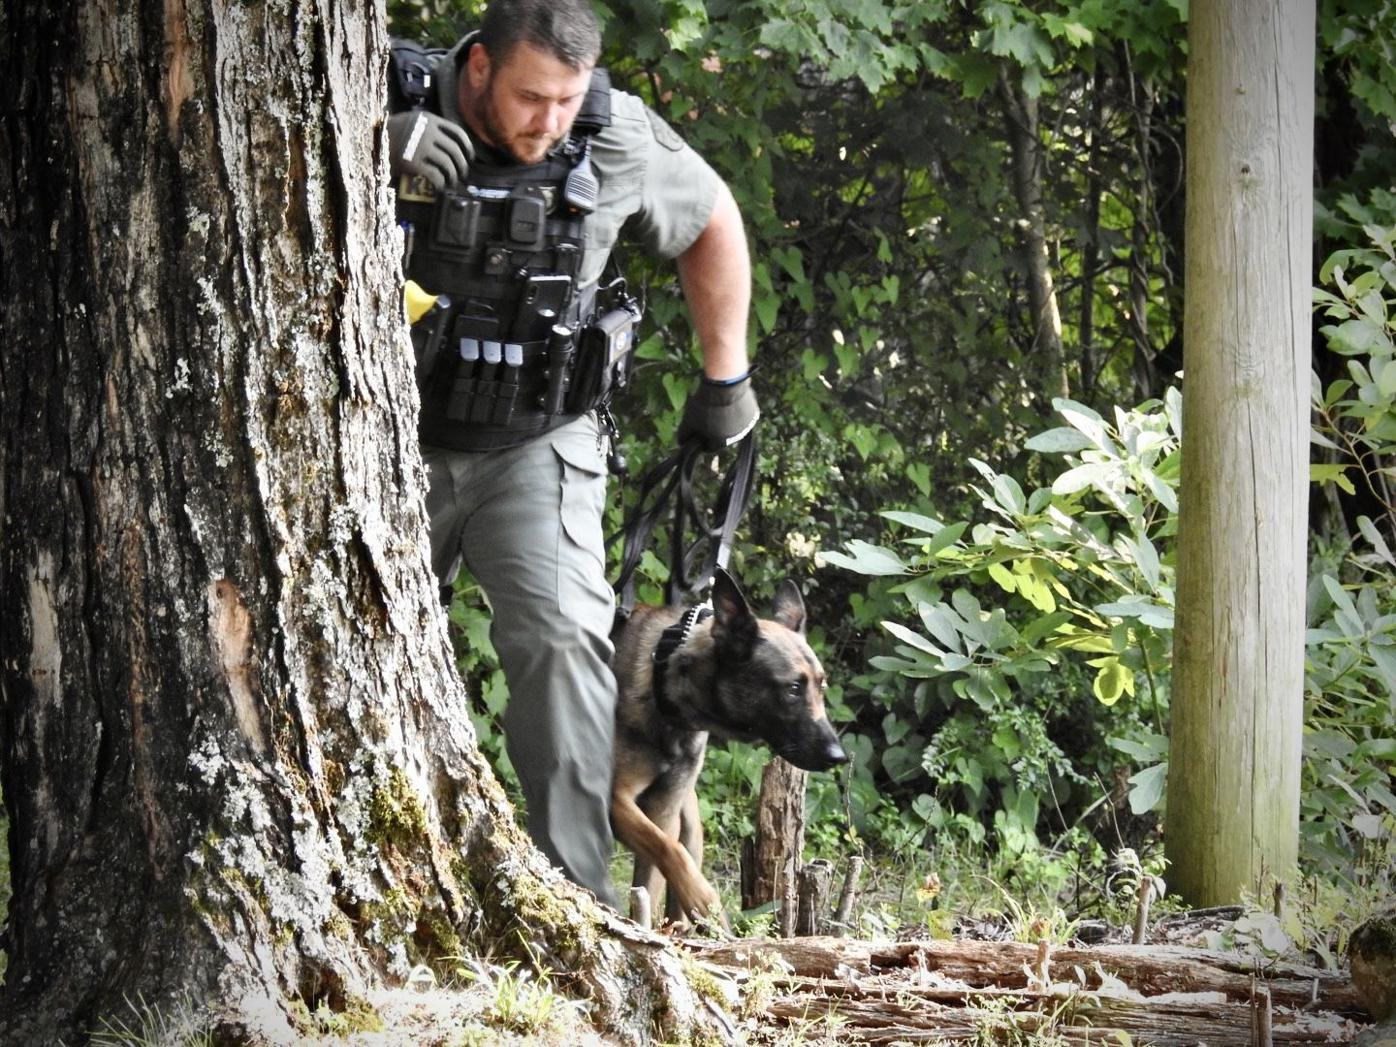 K-9 Officer And Dog Search For Fugitive